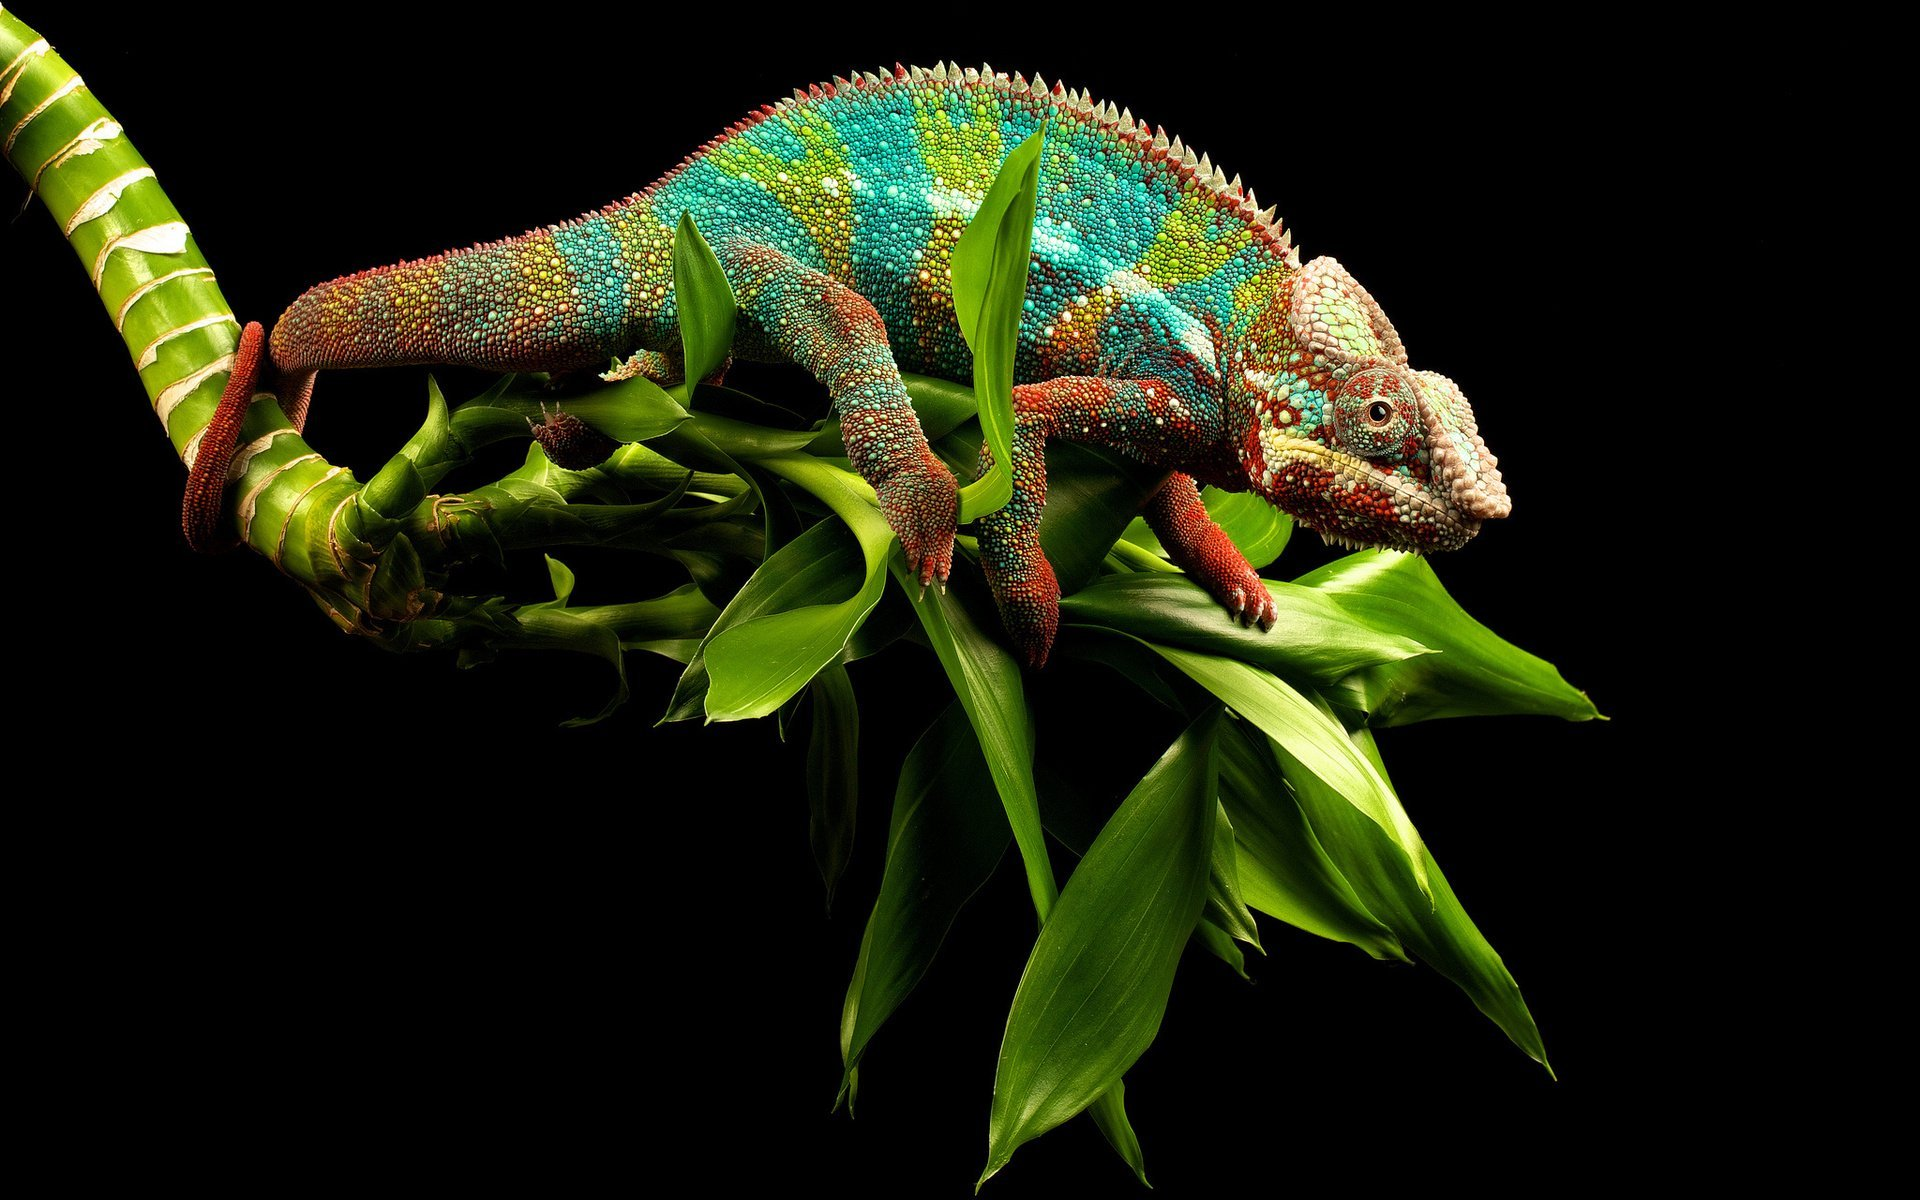 chameleon wallpaper 1920x1200 - photo #17